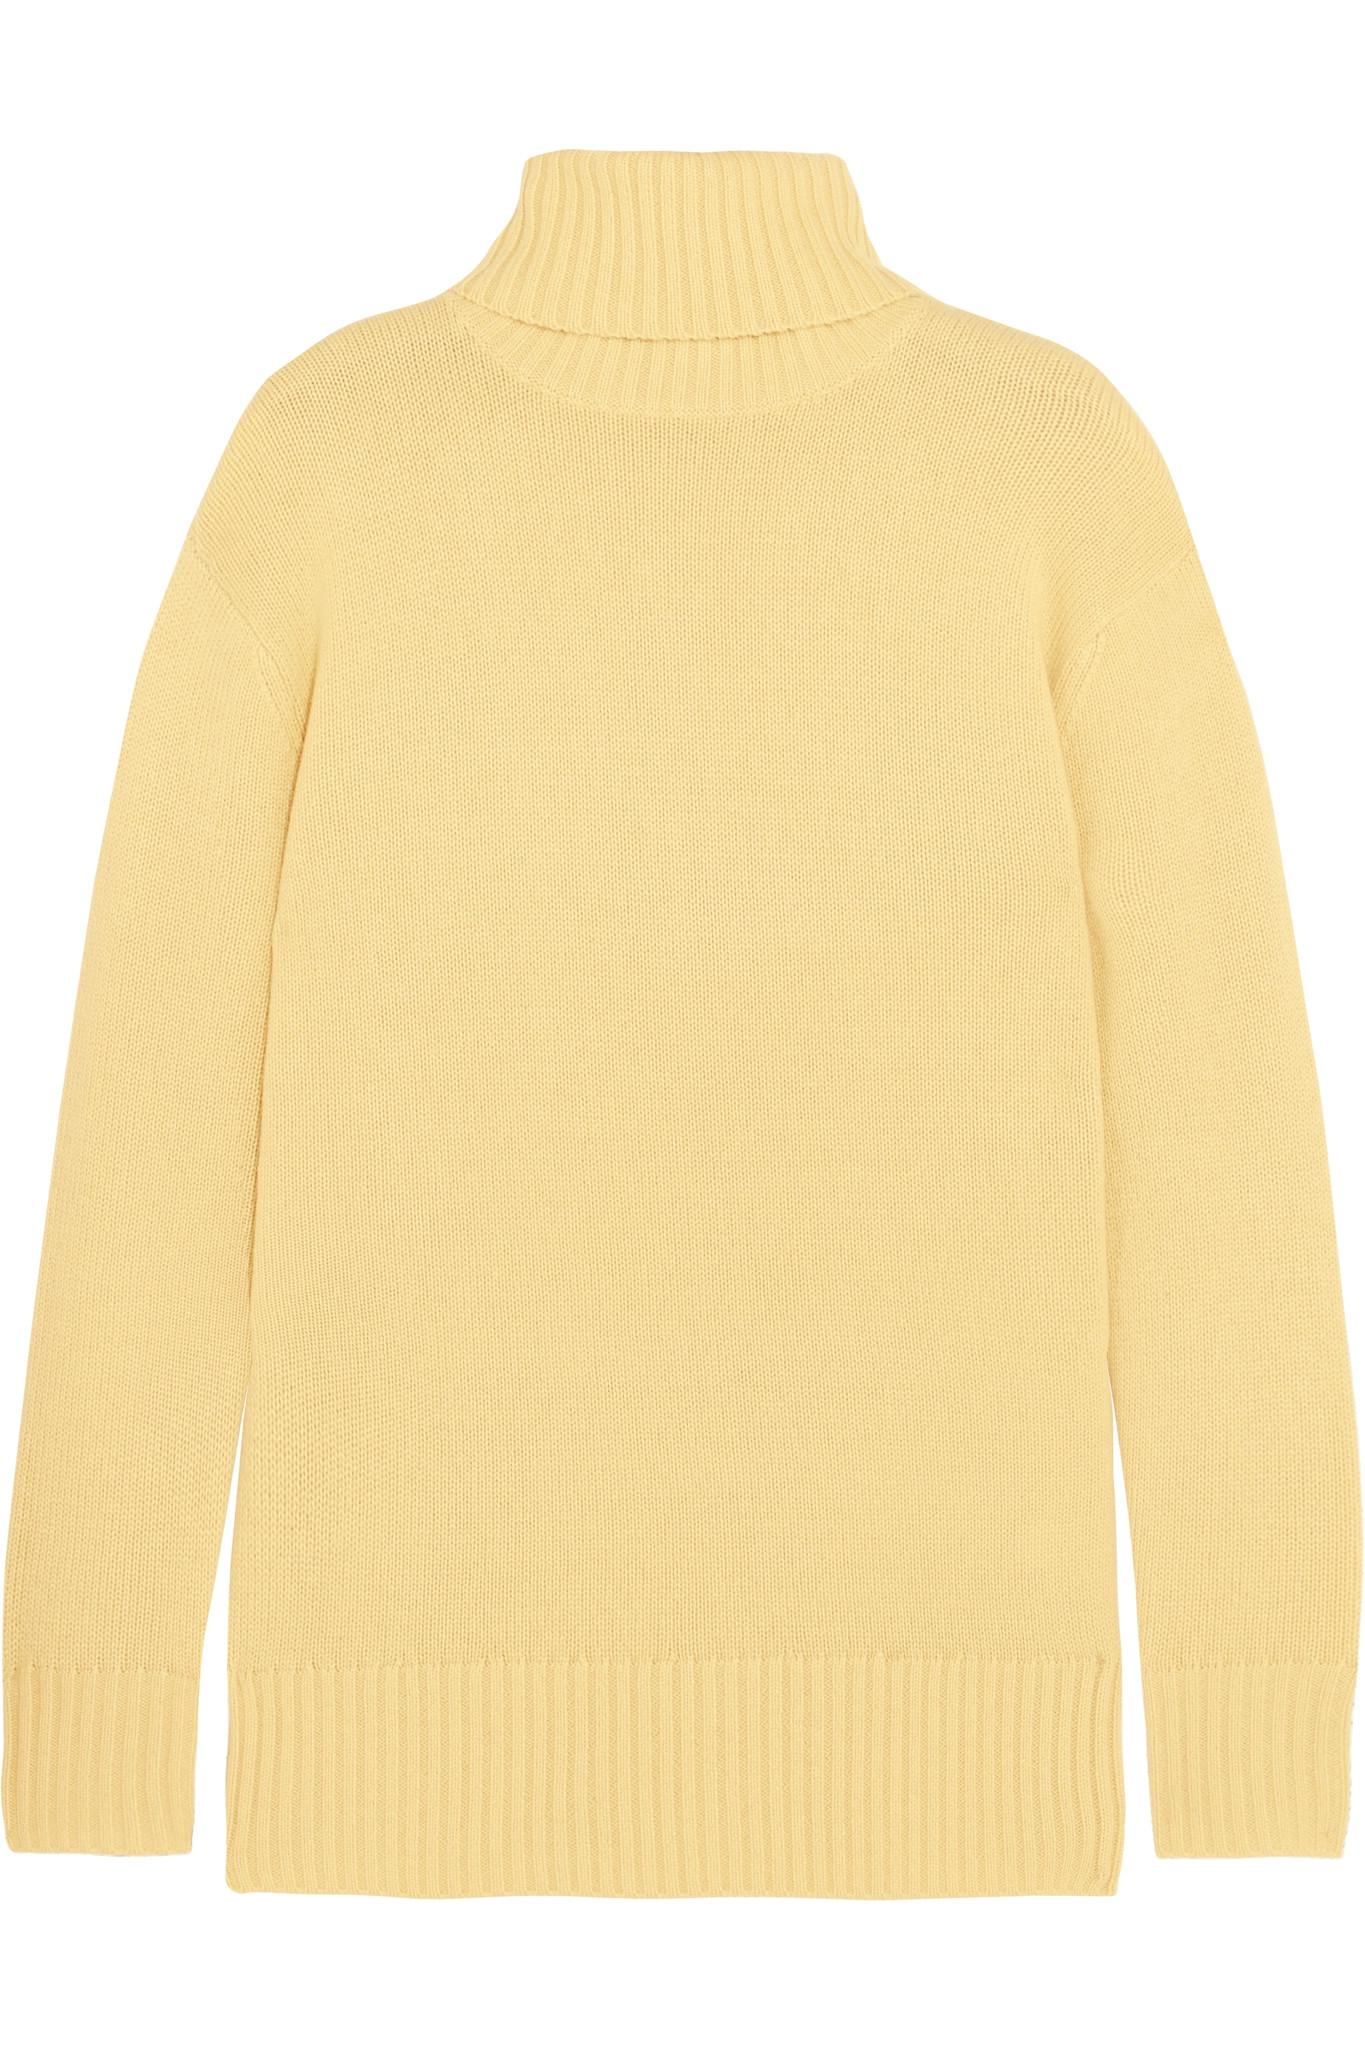 Chloé Cashmere Turtleneck Sweater in Yellow | Lyst